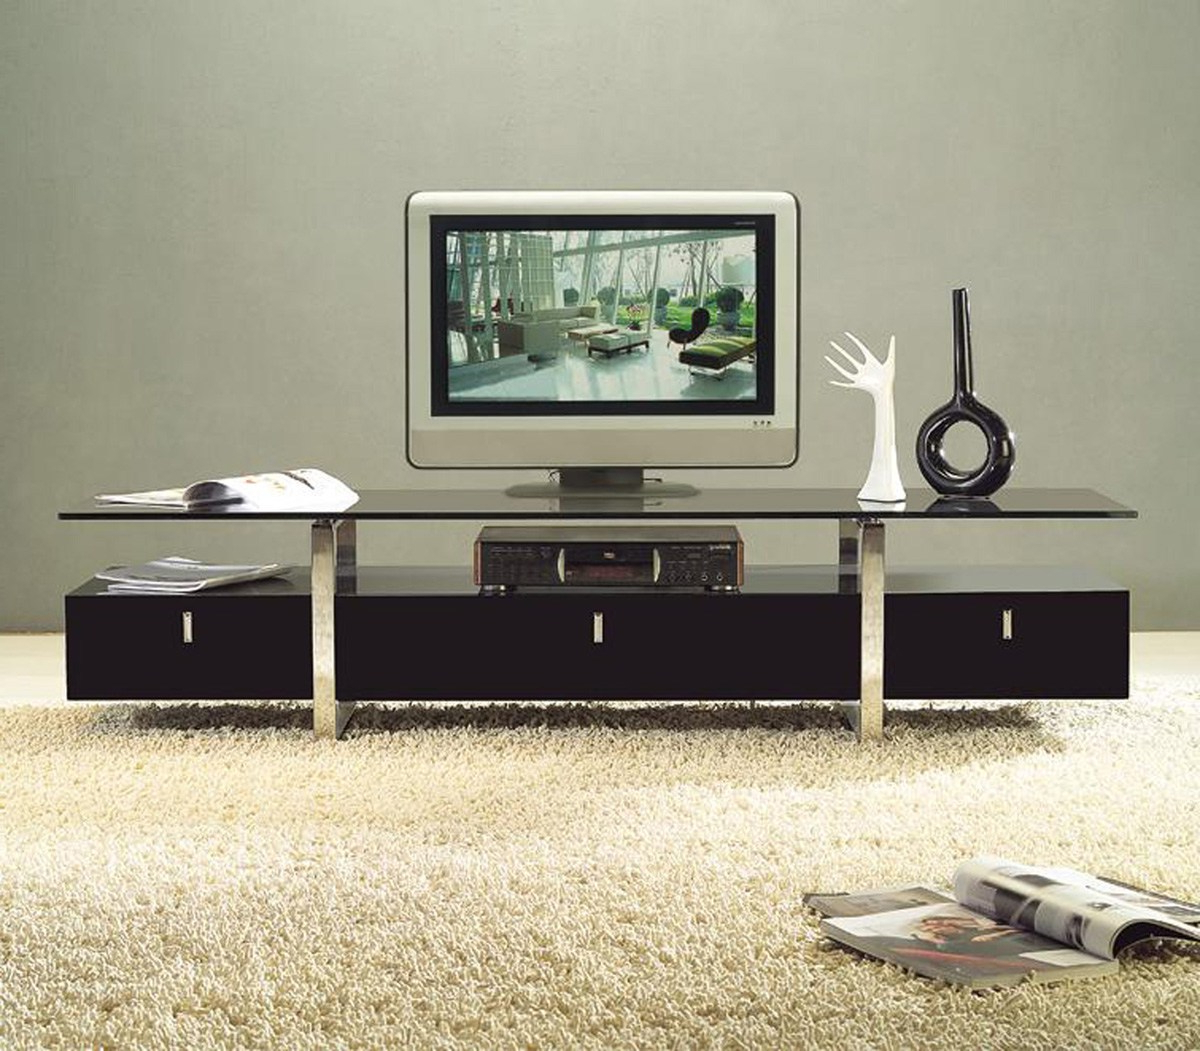 Mutable Tv Stand Living Room Decor Presenting Tempered Glass Wooden Throughout Newest Glass Tv Cabinets (View 13 of 20)